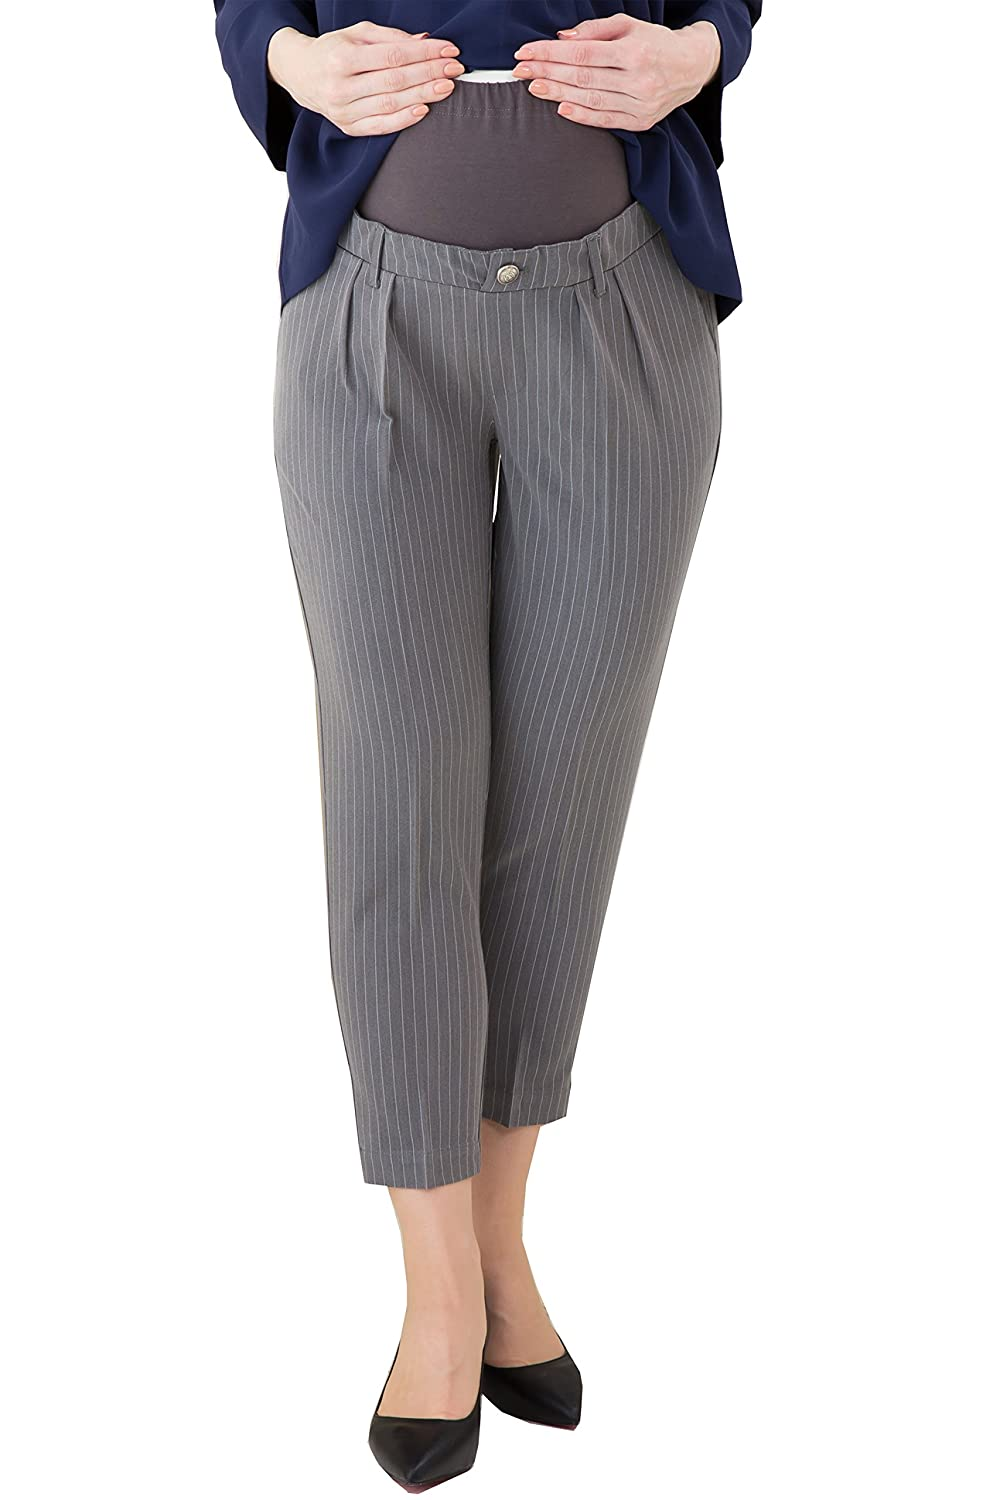 Sweet Mommy Belly Band Maternity Tapered Pants Sweet Mommy Co. Ltd kp5017